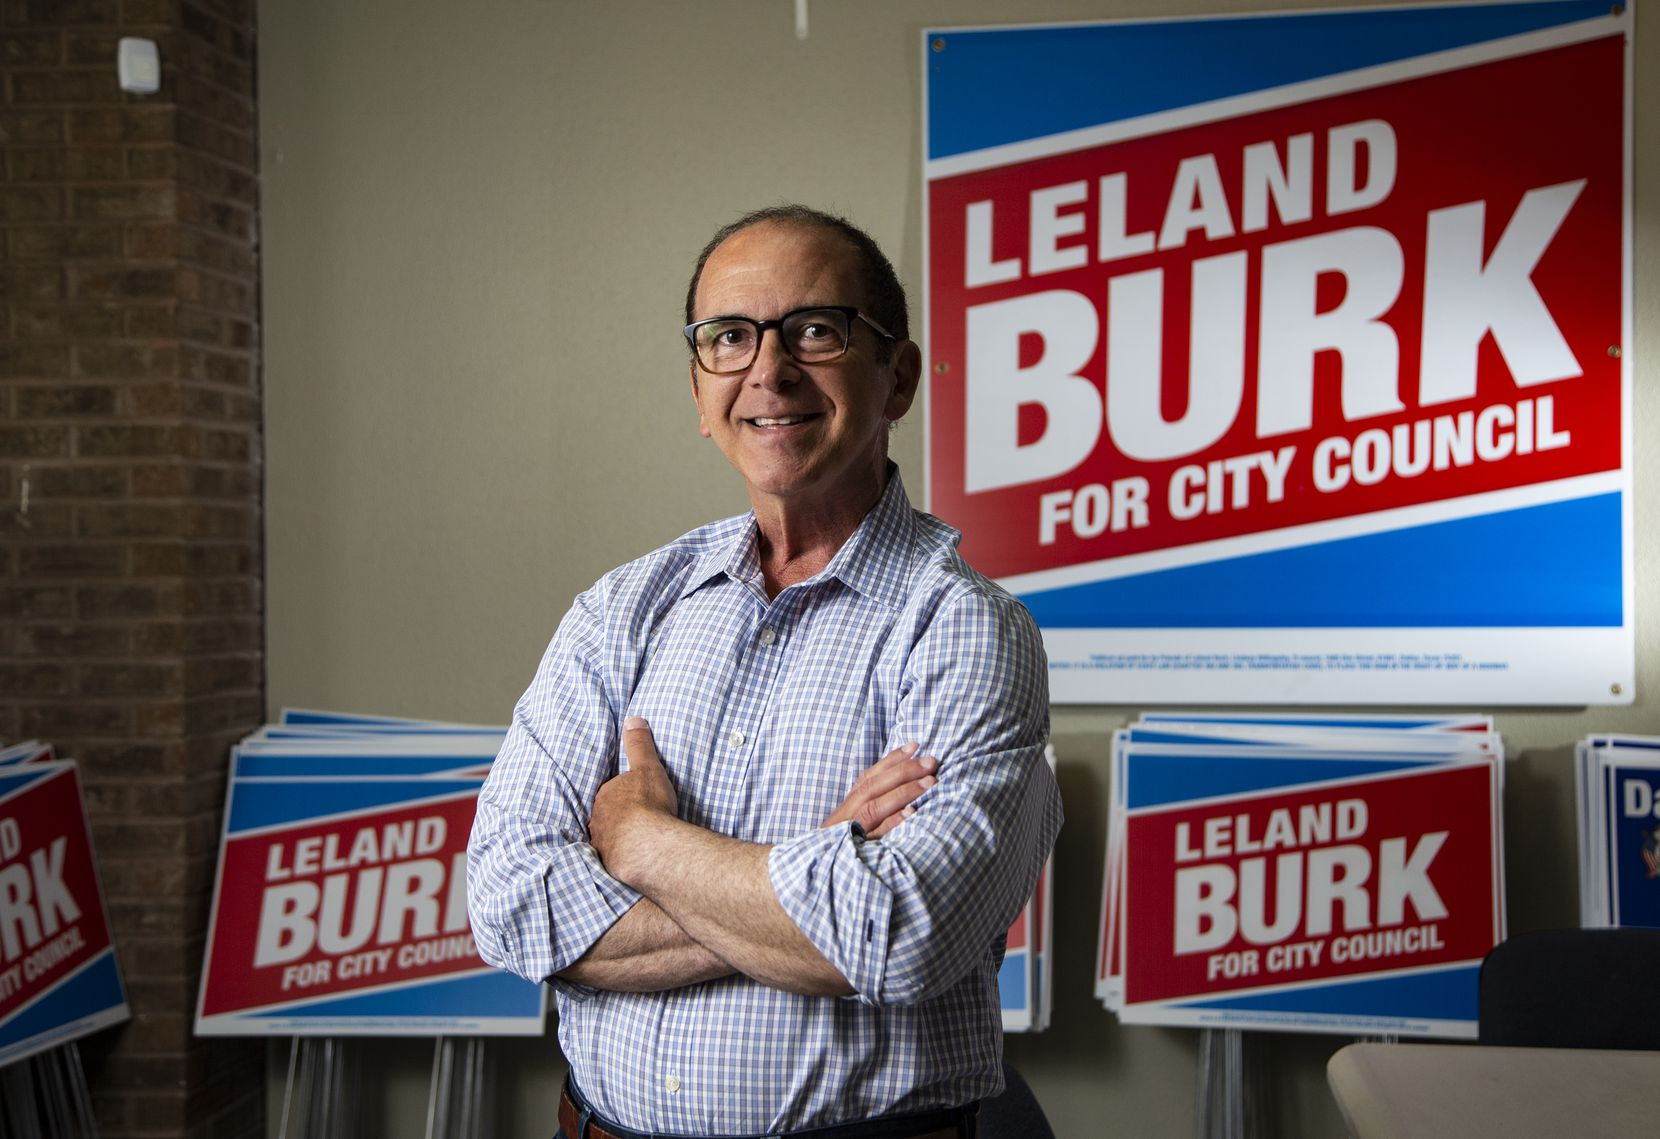 Leland Burk, a Dallas City Council candidate running to represent District 13, poses for a photo at his campaign office in North Dallas, Friday, May 21, 2021. He is one of two candidates competing in the June 5th runoff for the open council seat. (Brandon Wade/Special Contributor)